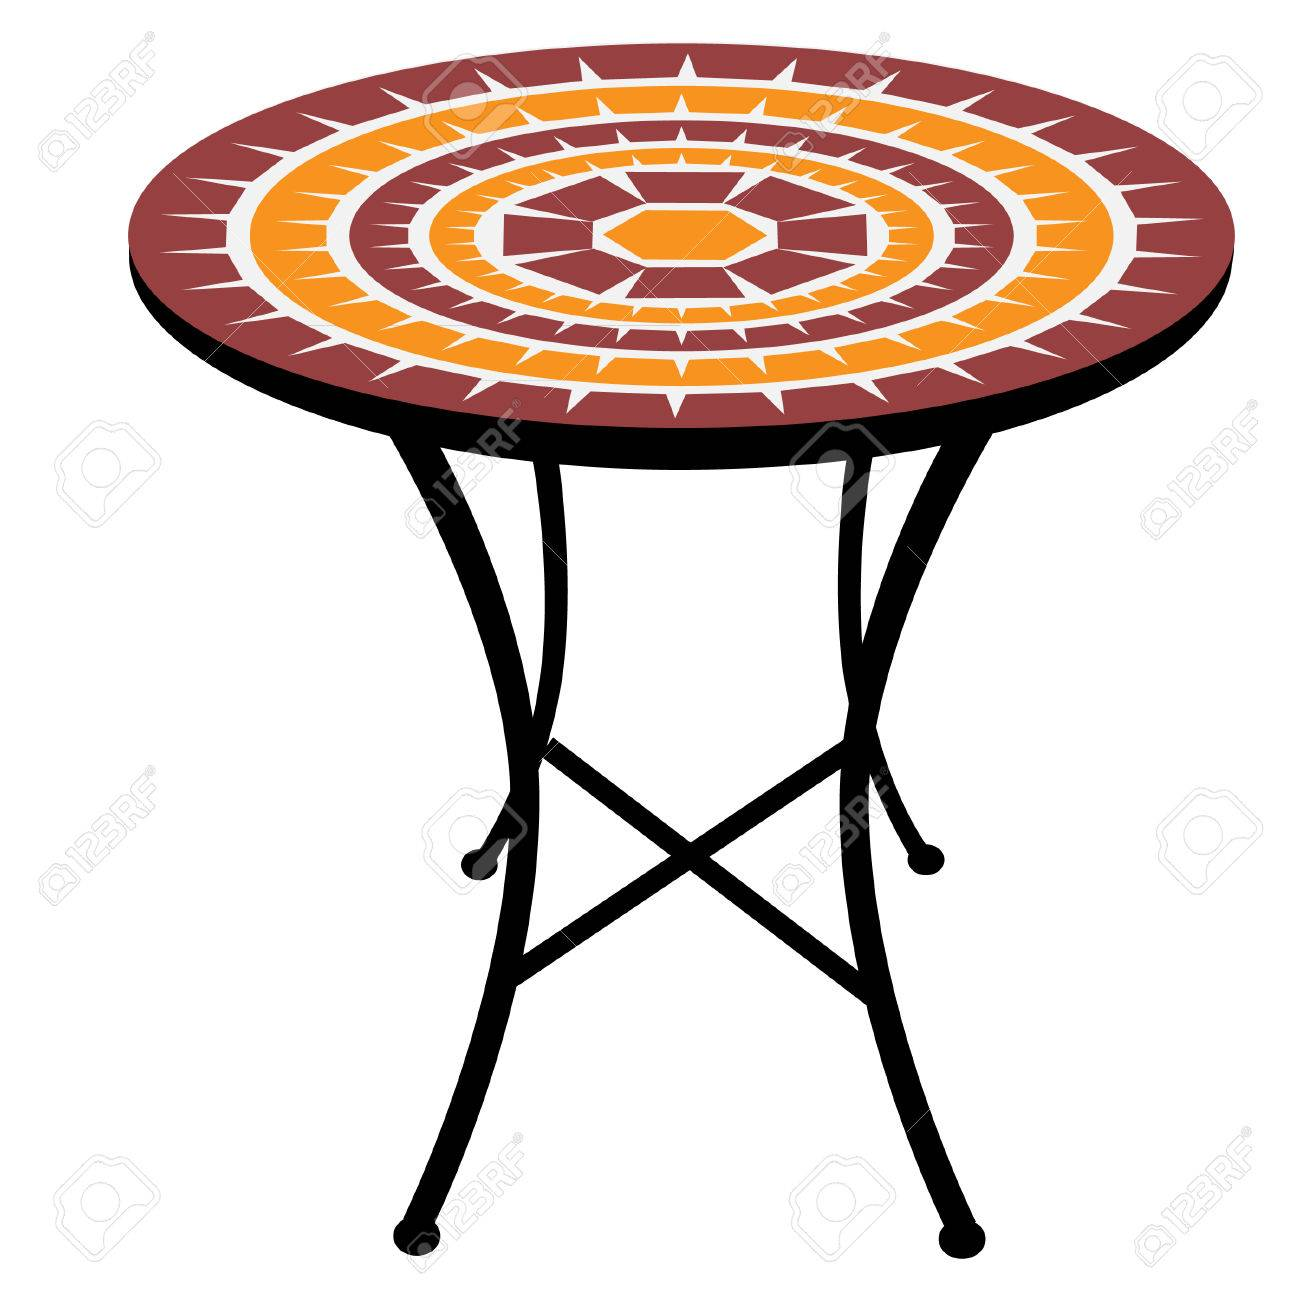 Vintage Outdoor Round Table Vector Isolated Cafeteria Table - Round table clip art